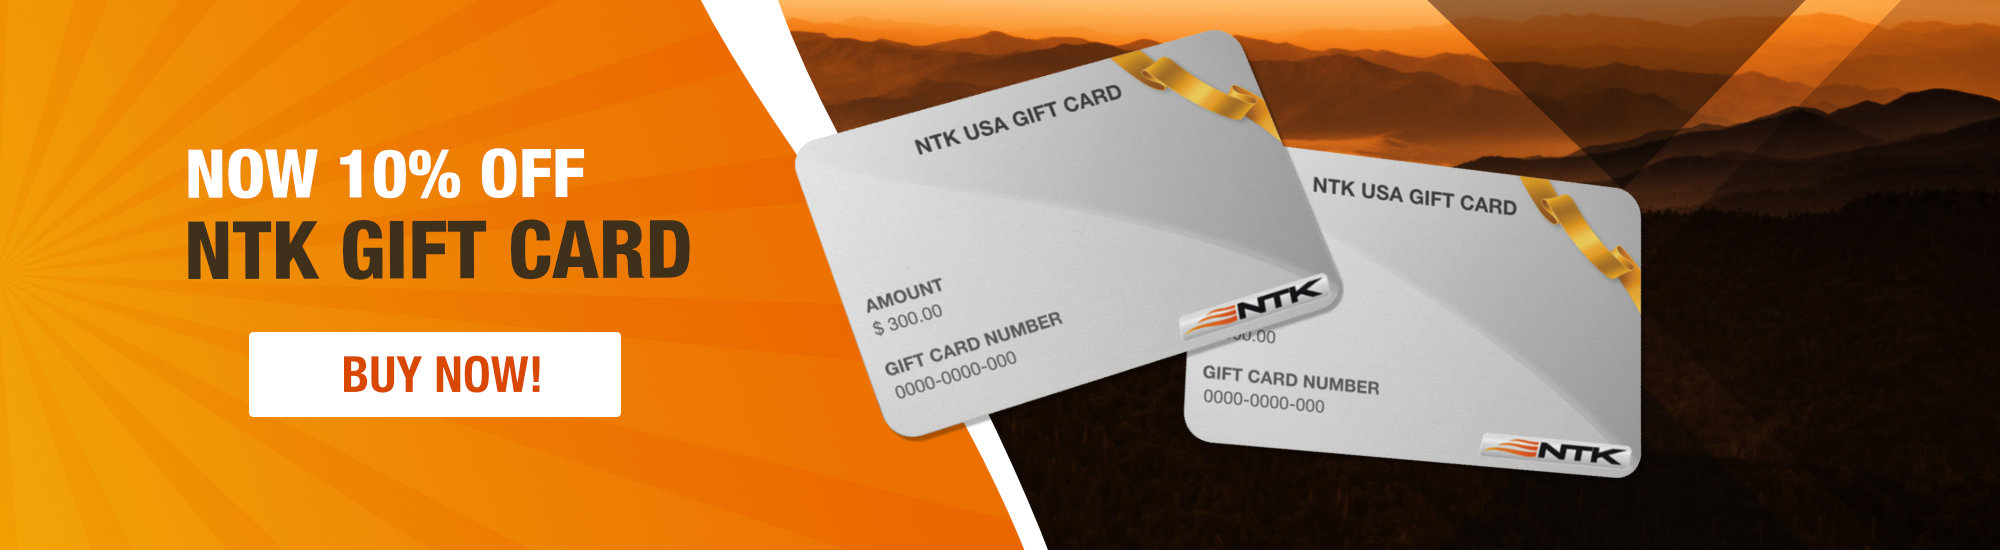 NTK Gift Card 10% Off